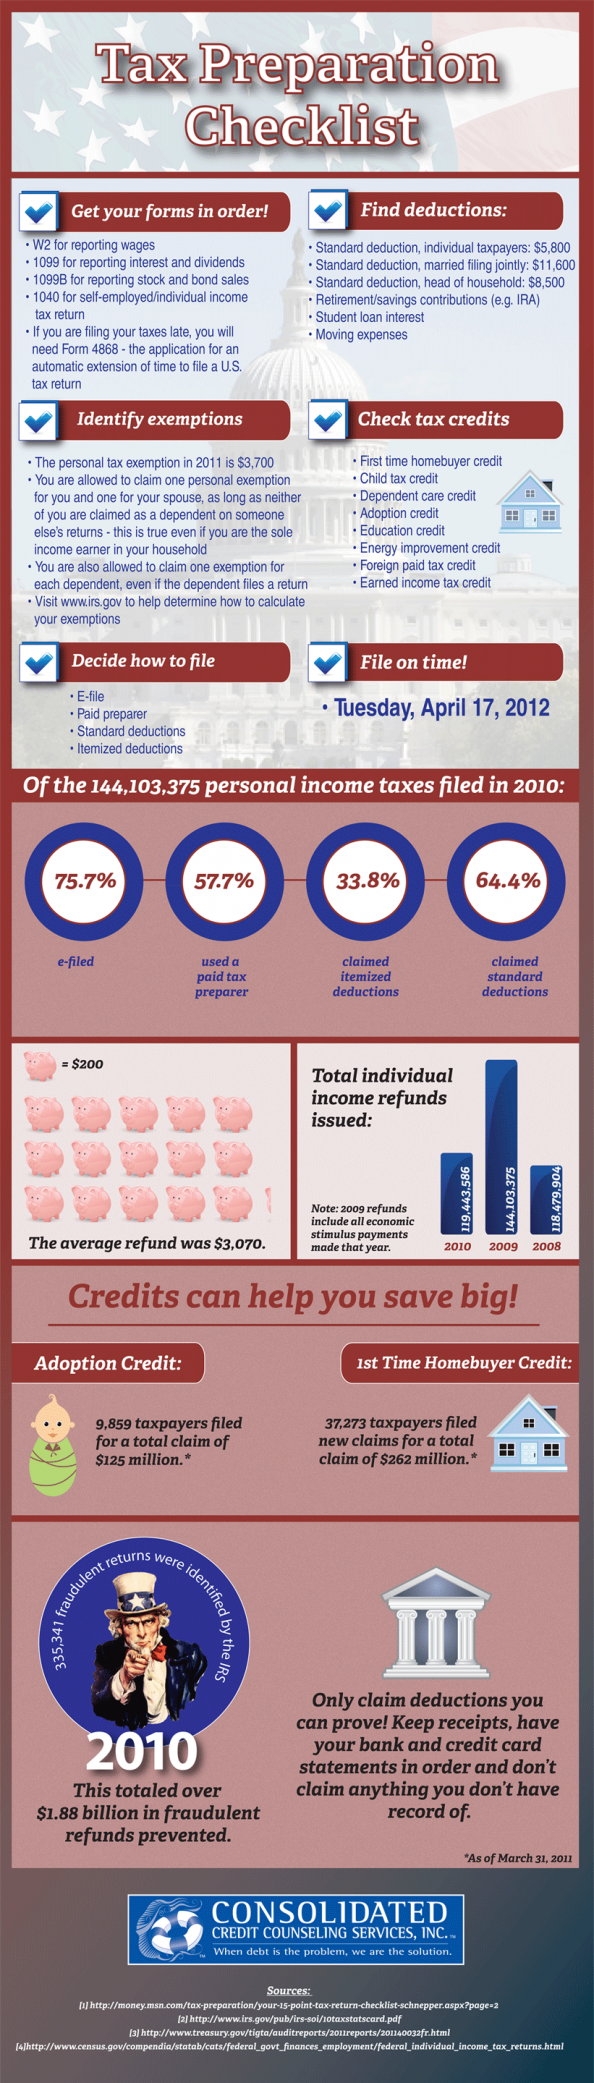 Tax Preparation Checklist Infographic